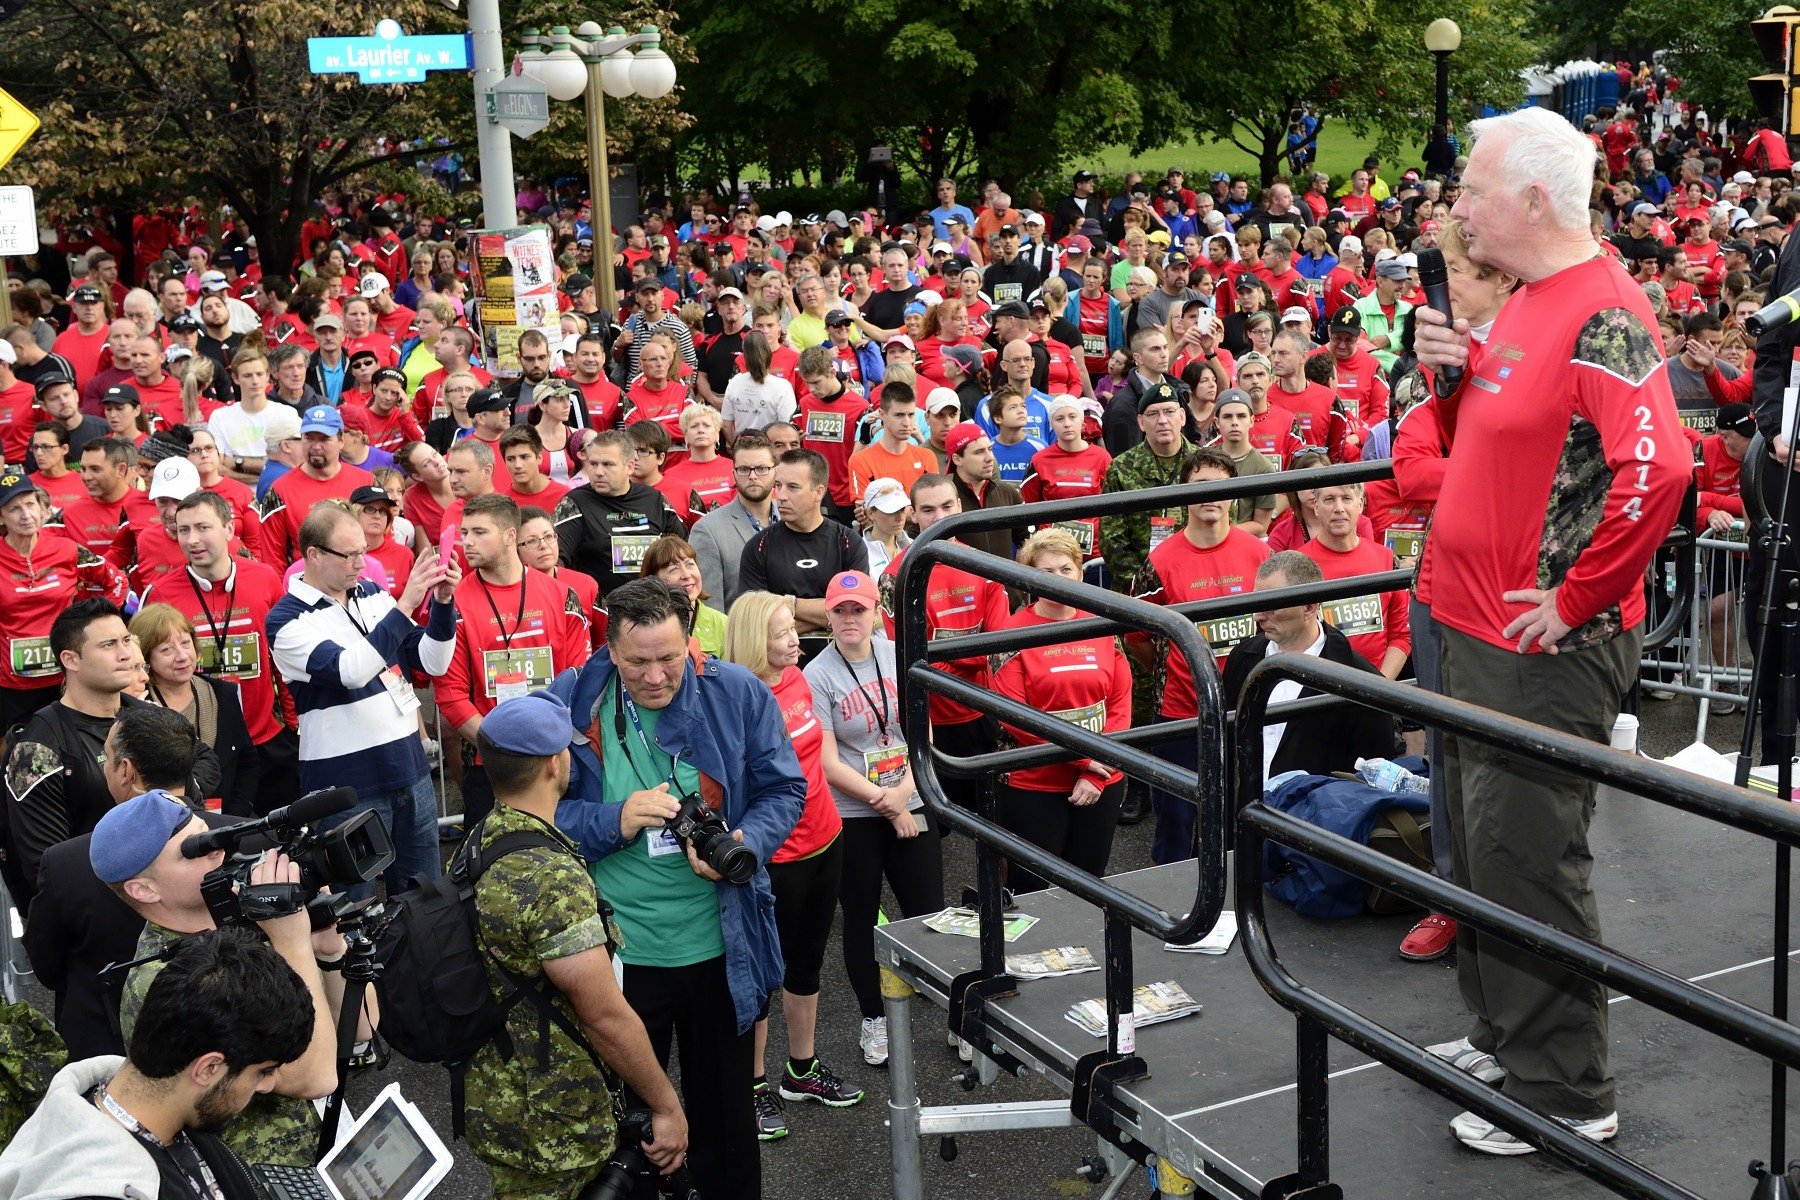 His Excellency thanked all the participants and invited the public to join him at Rideau Hall to cheer on half-marathon participants as they make their way through the grounds.